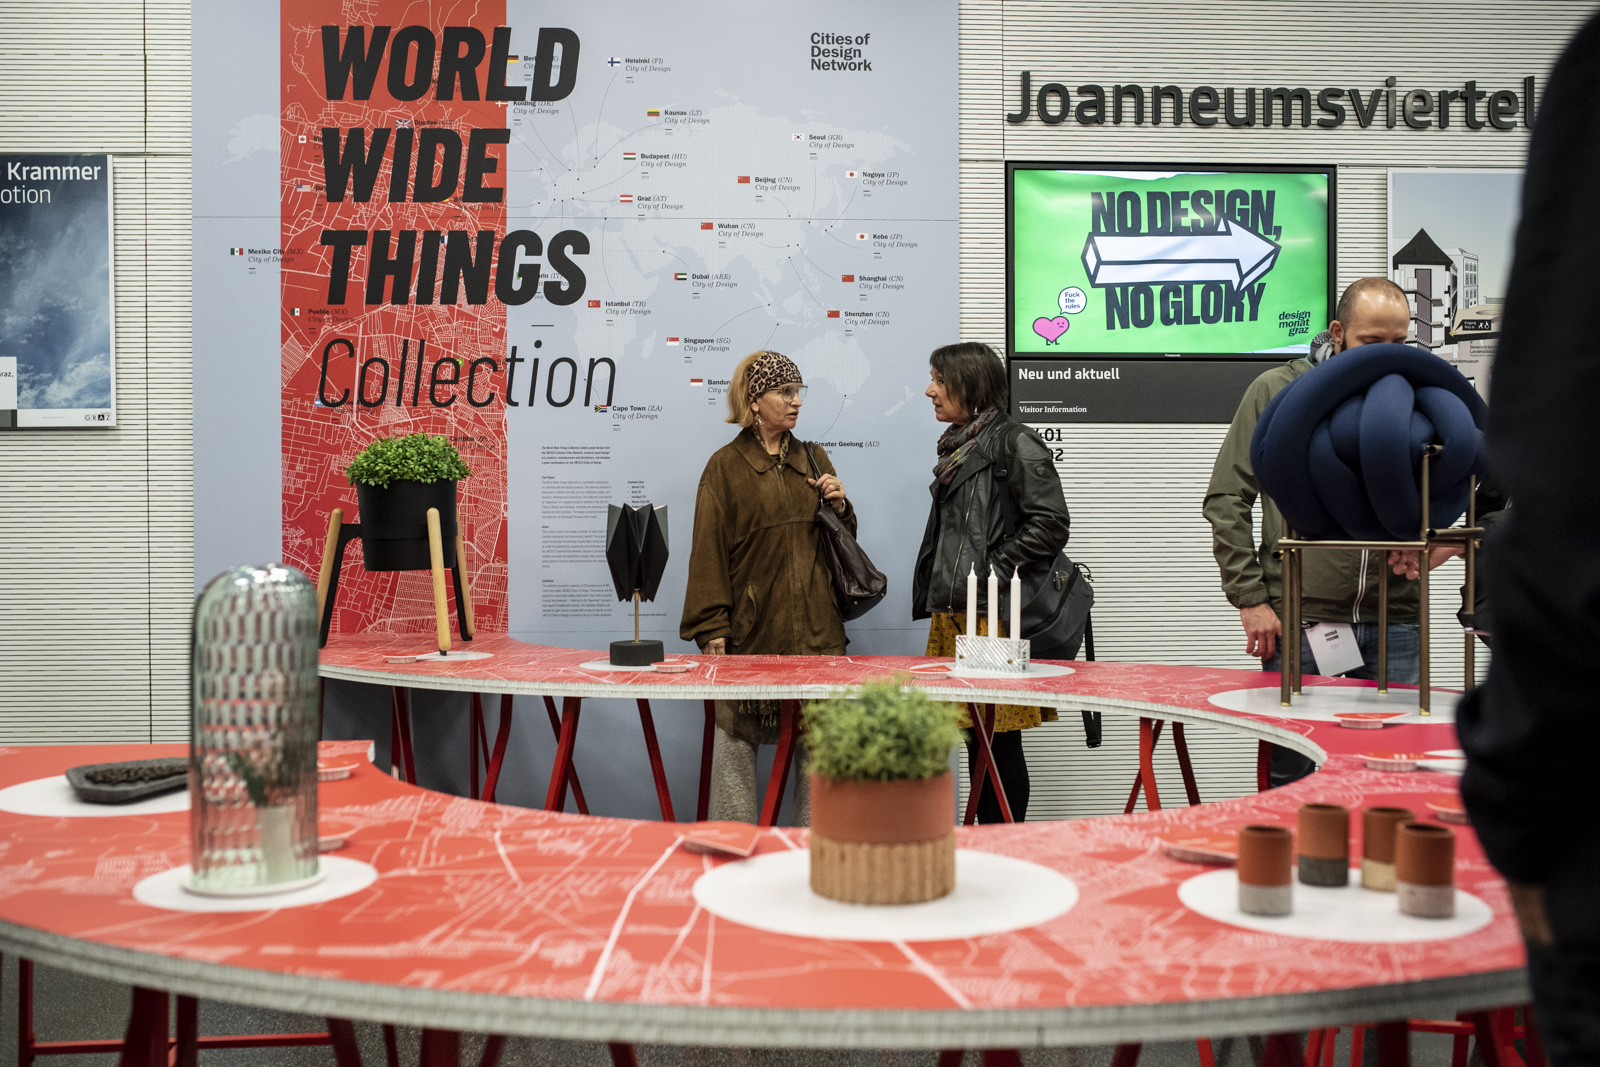 Exhibition: World Wide Things Collection - Cities of Design Network